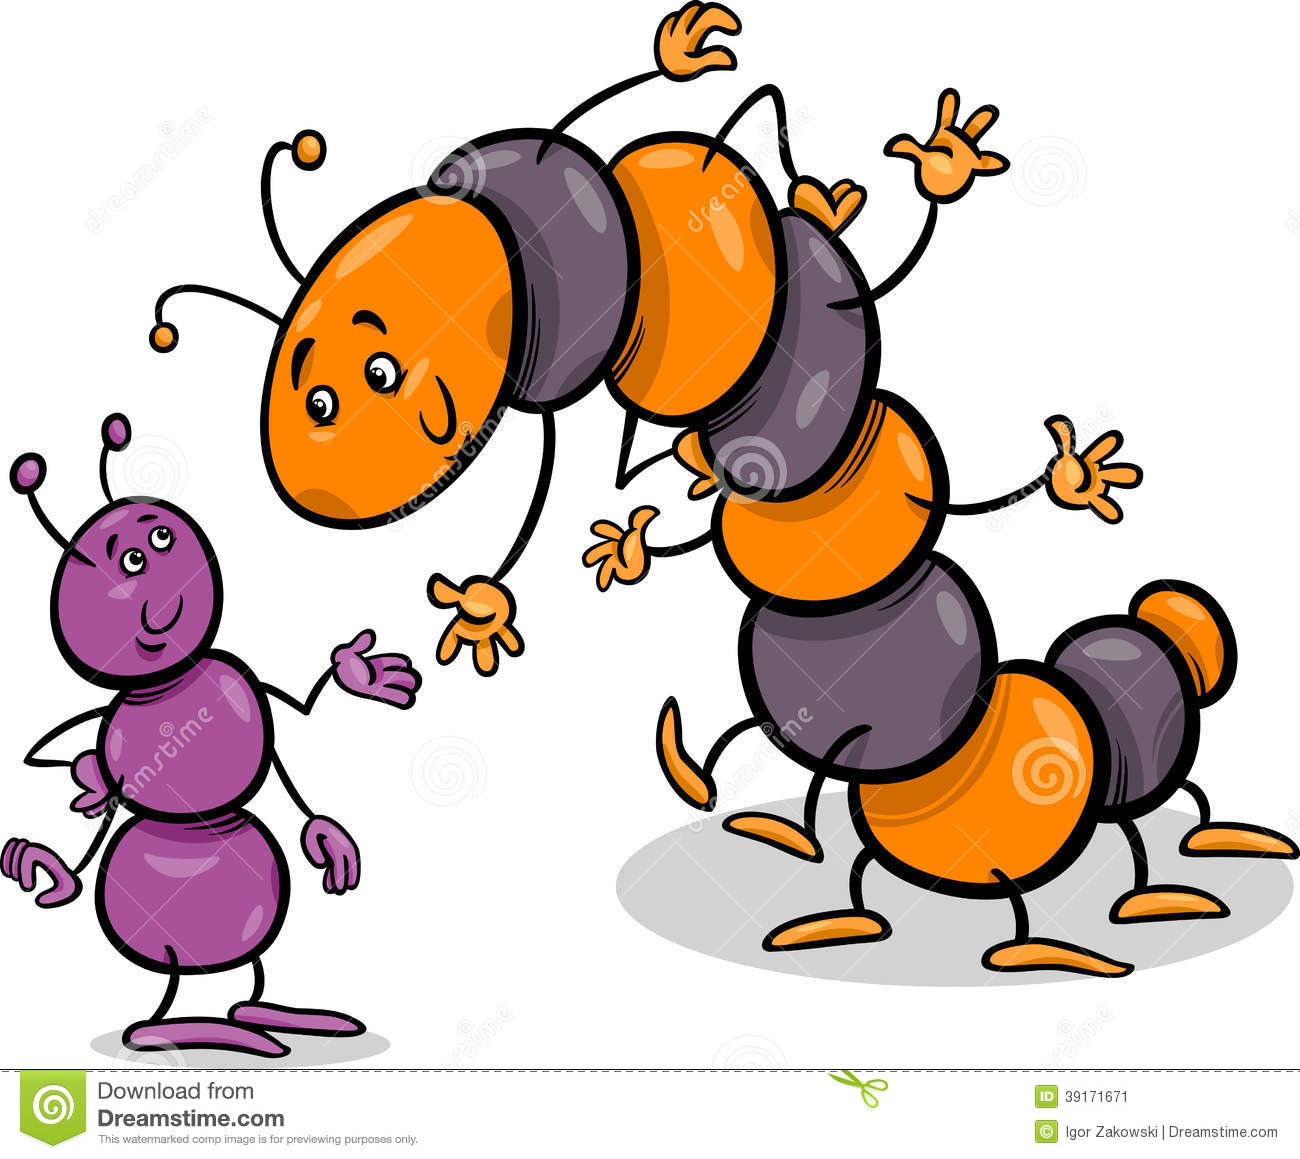 ... Illustration of Ant and Caterpillar or Millipede Insects Characters